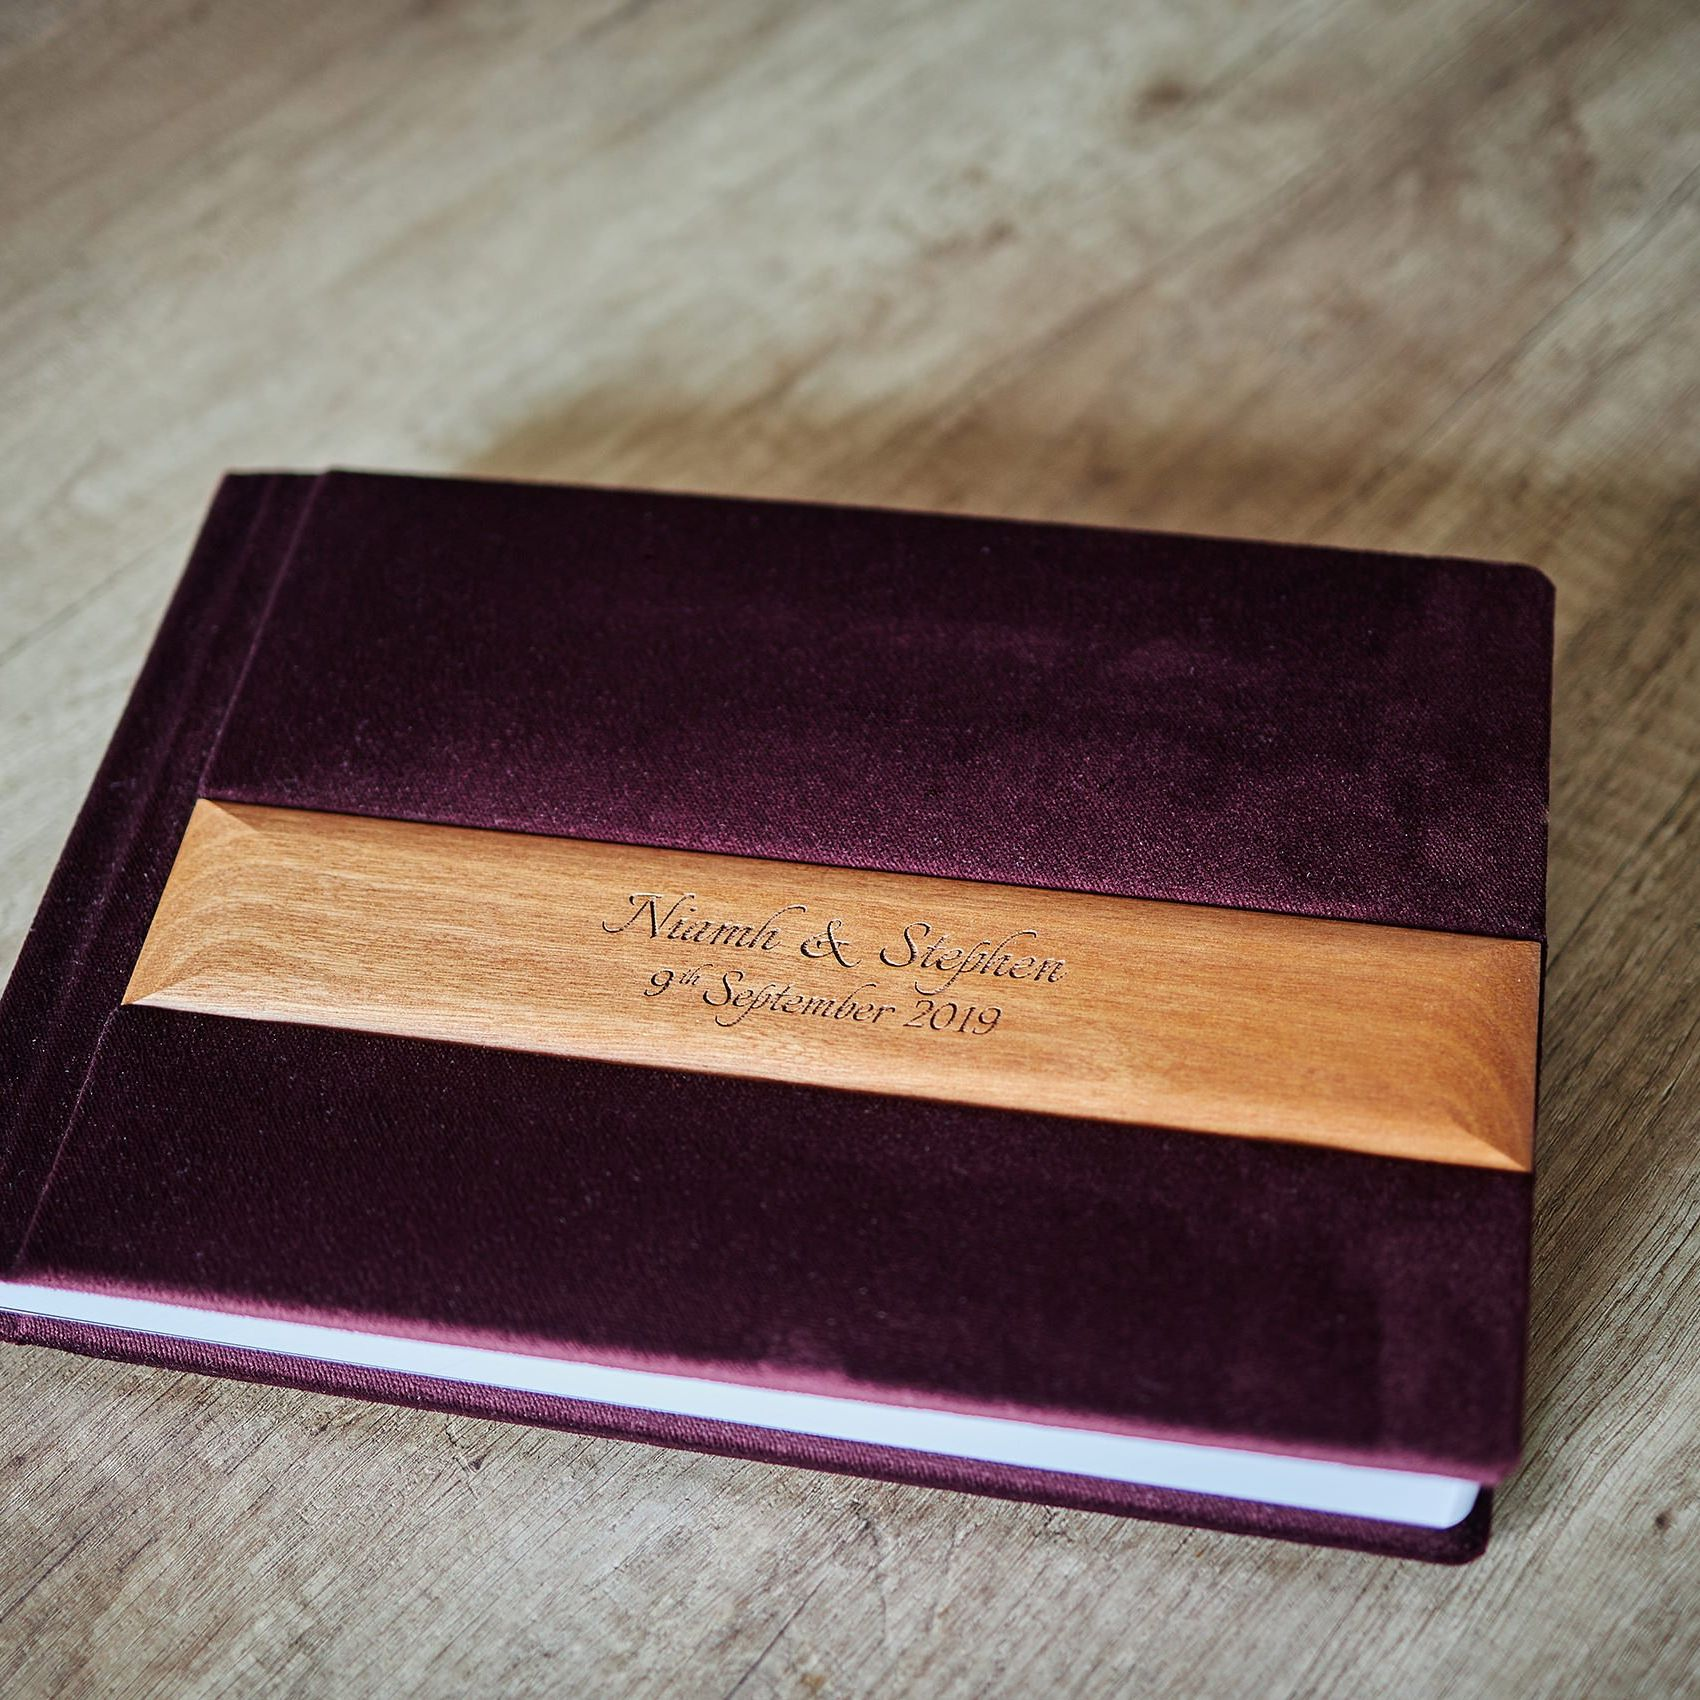 1 Standard and 2 Parents wedding albums (60 pages-150 photos) 9